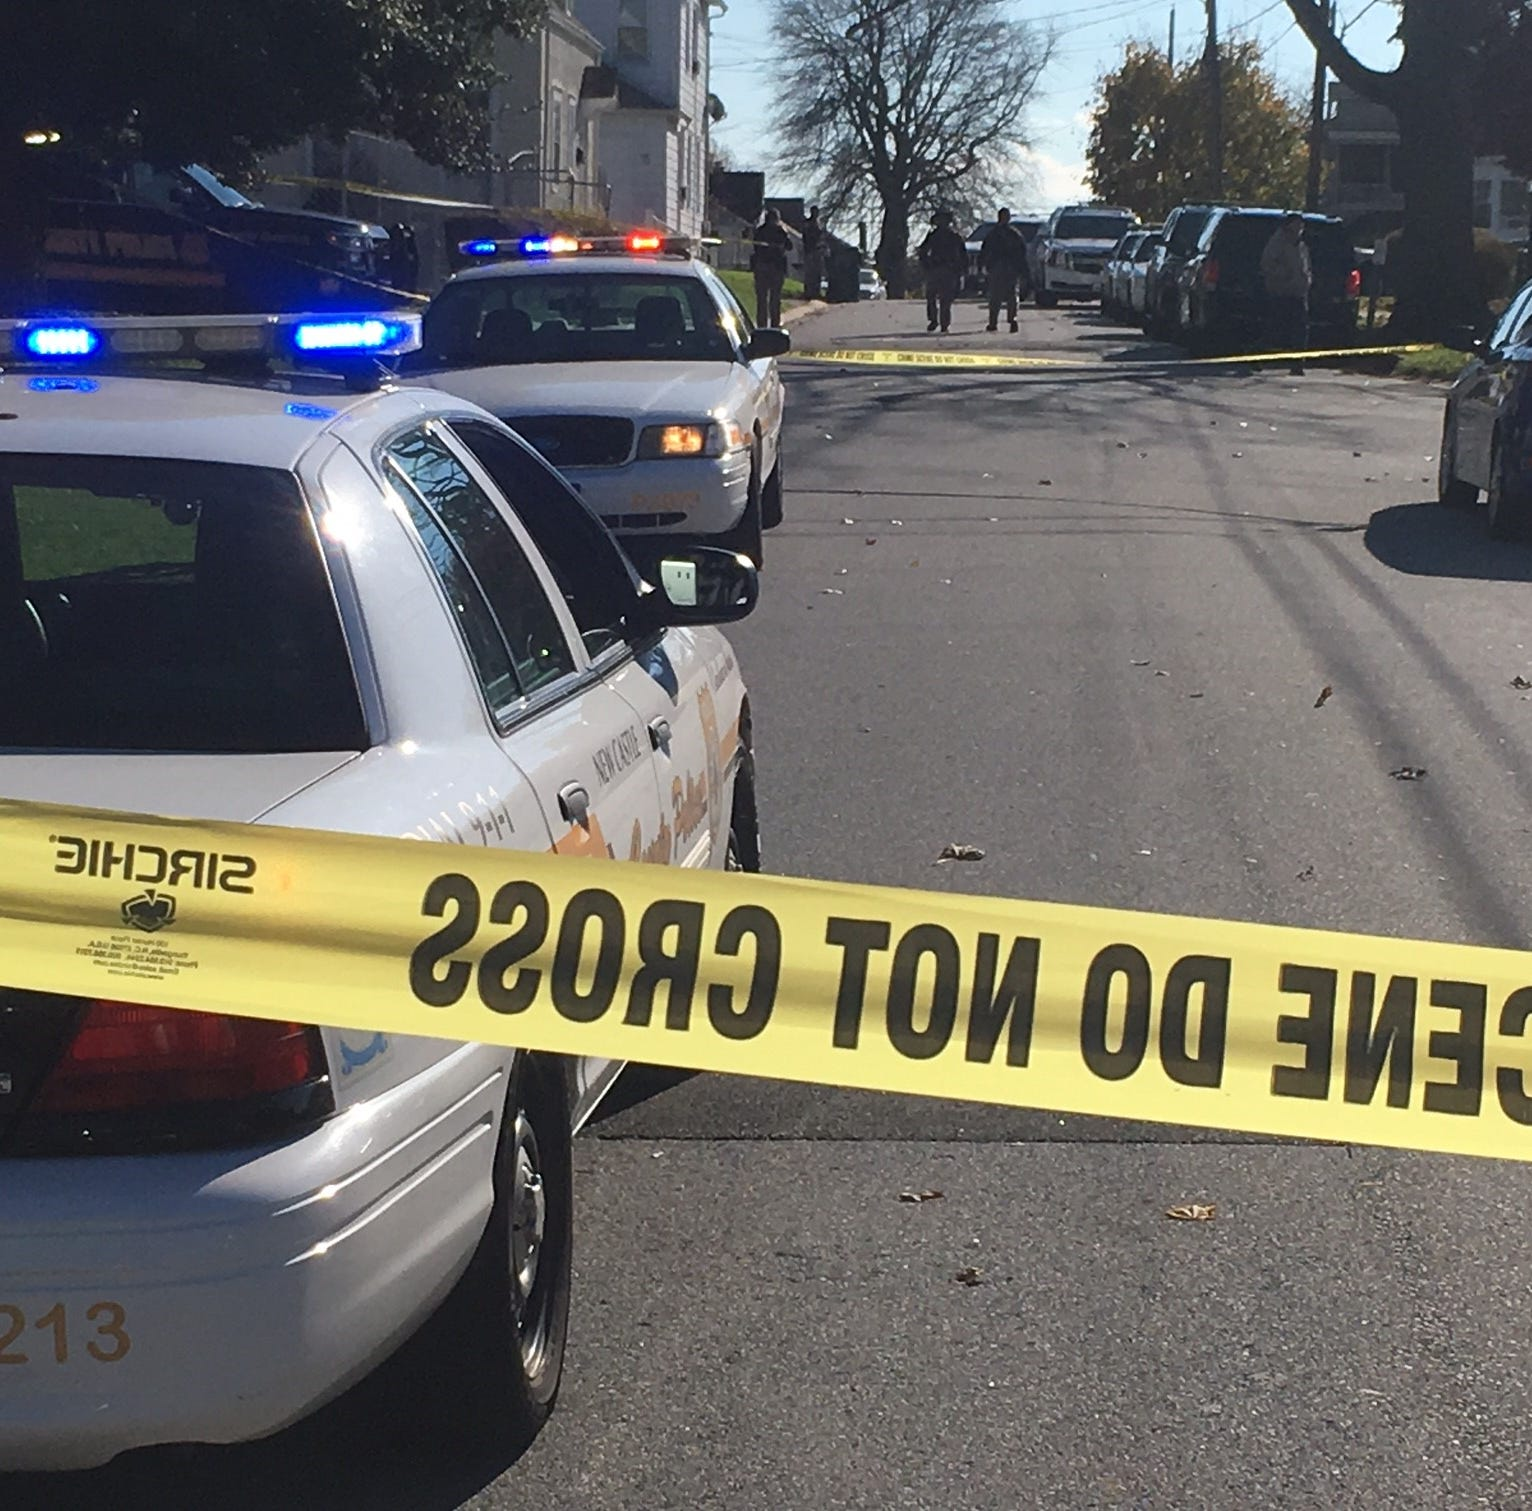 18-year-old shot near Elsmere now listed in stable condition